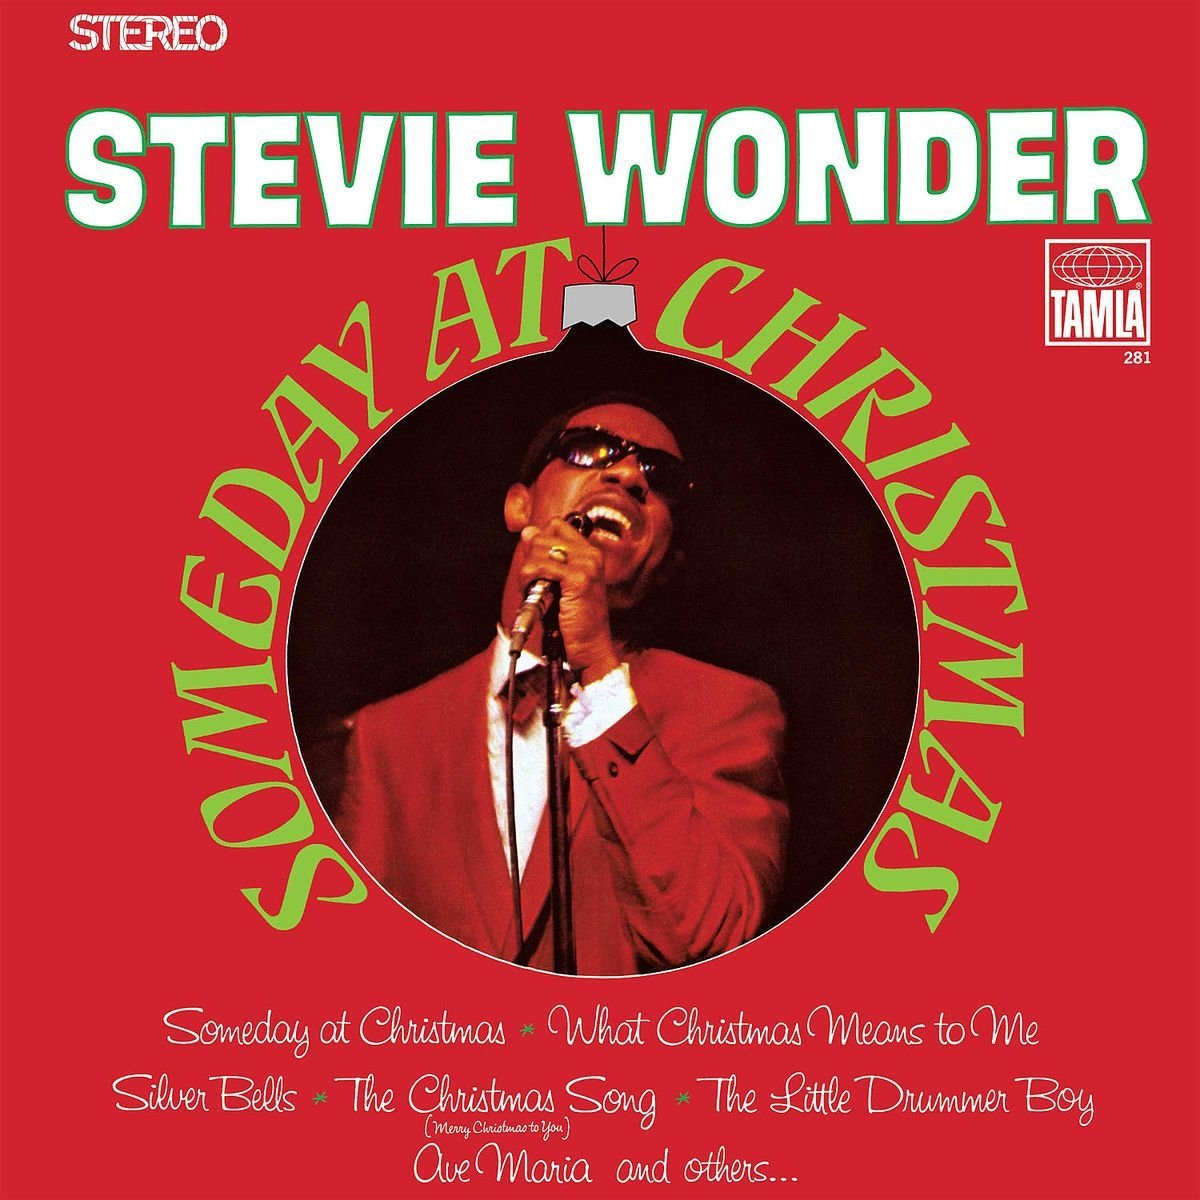 Stevie Wonder Christmas.jpg